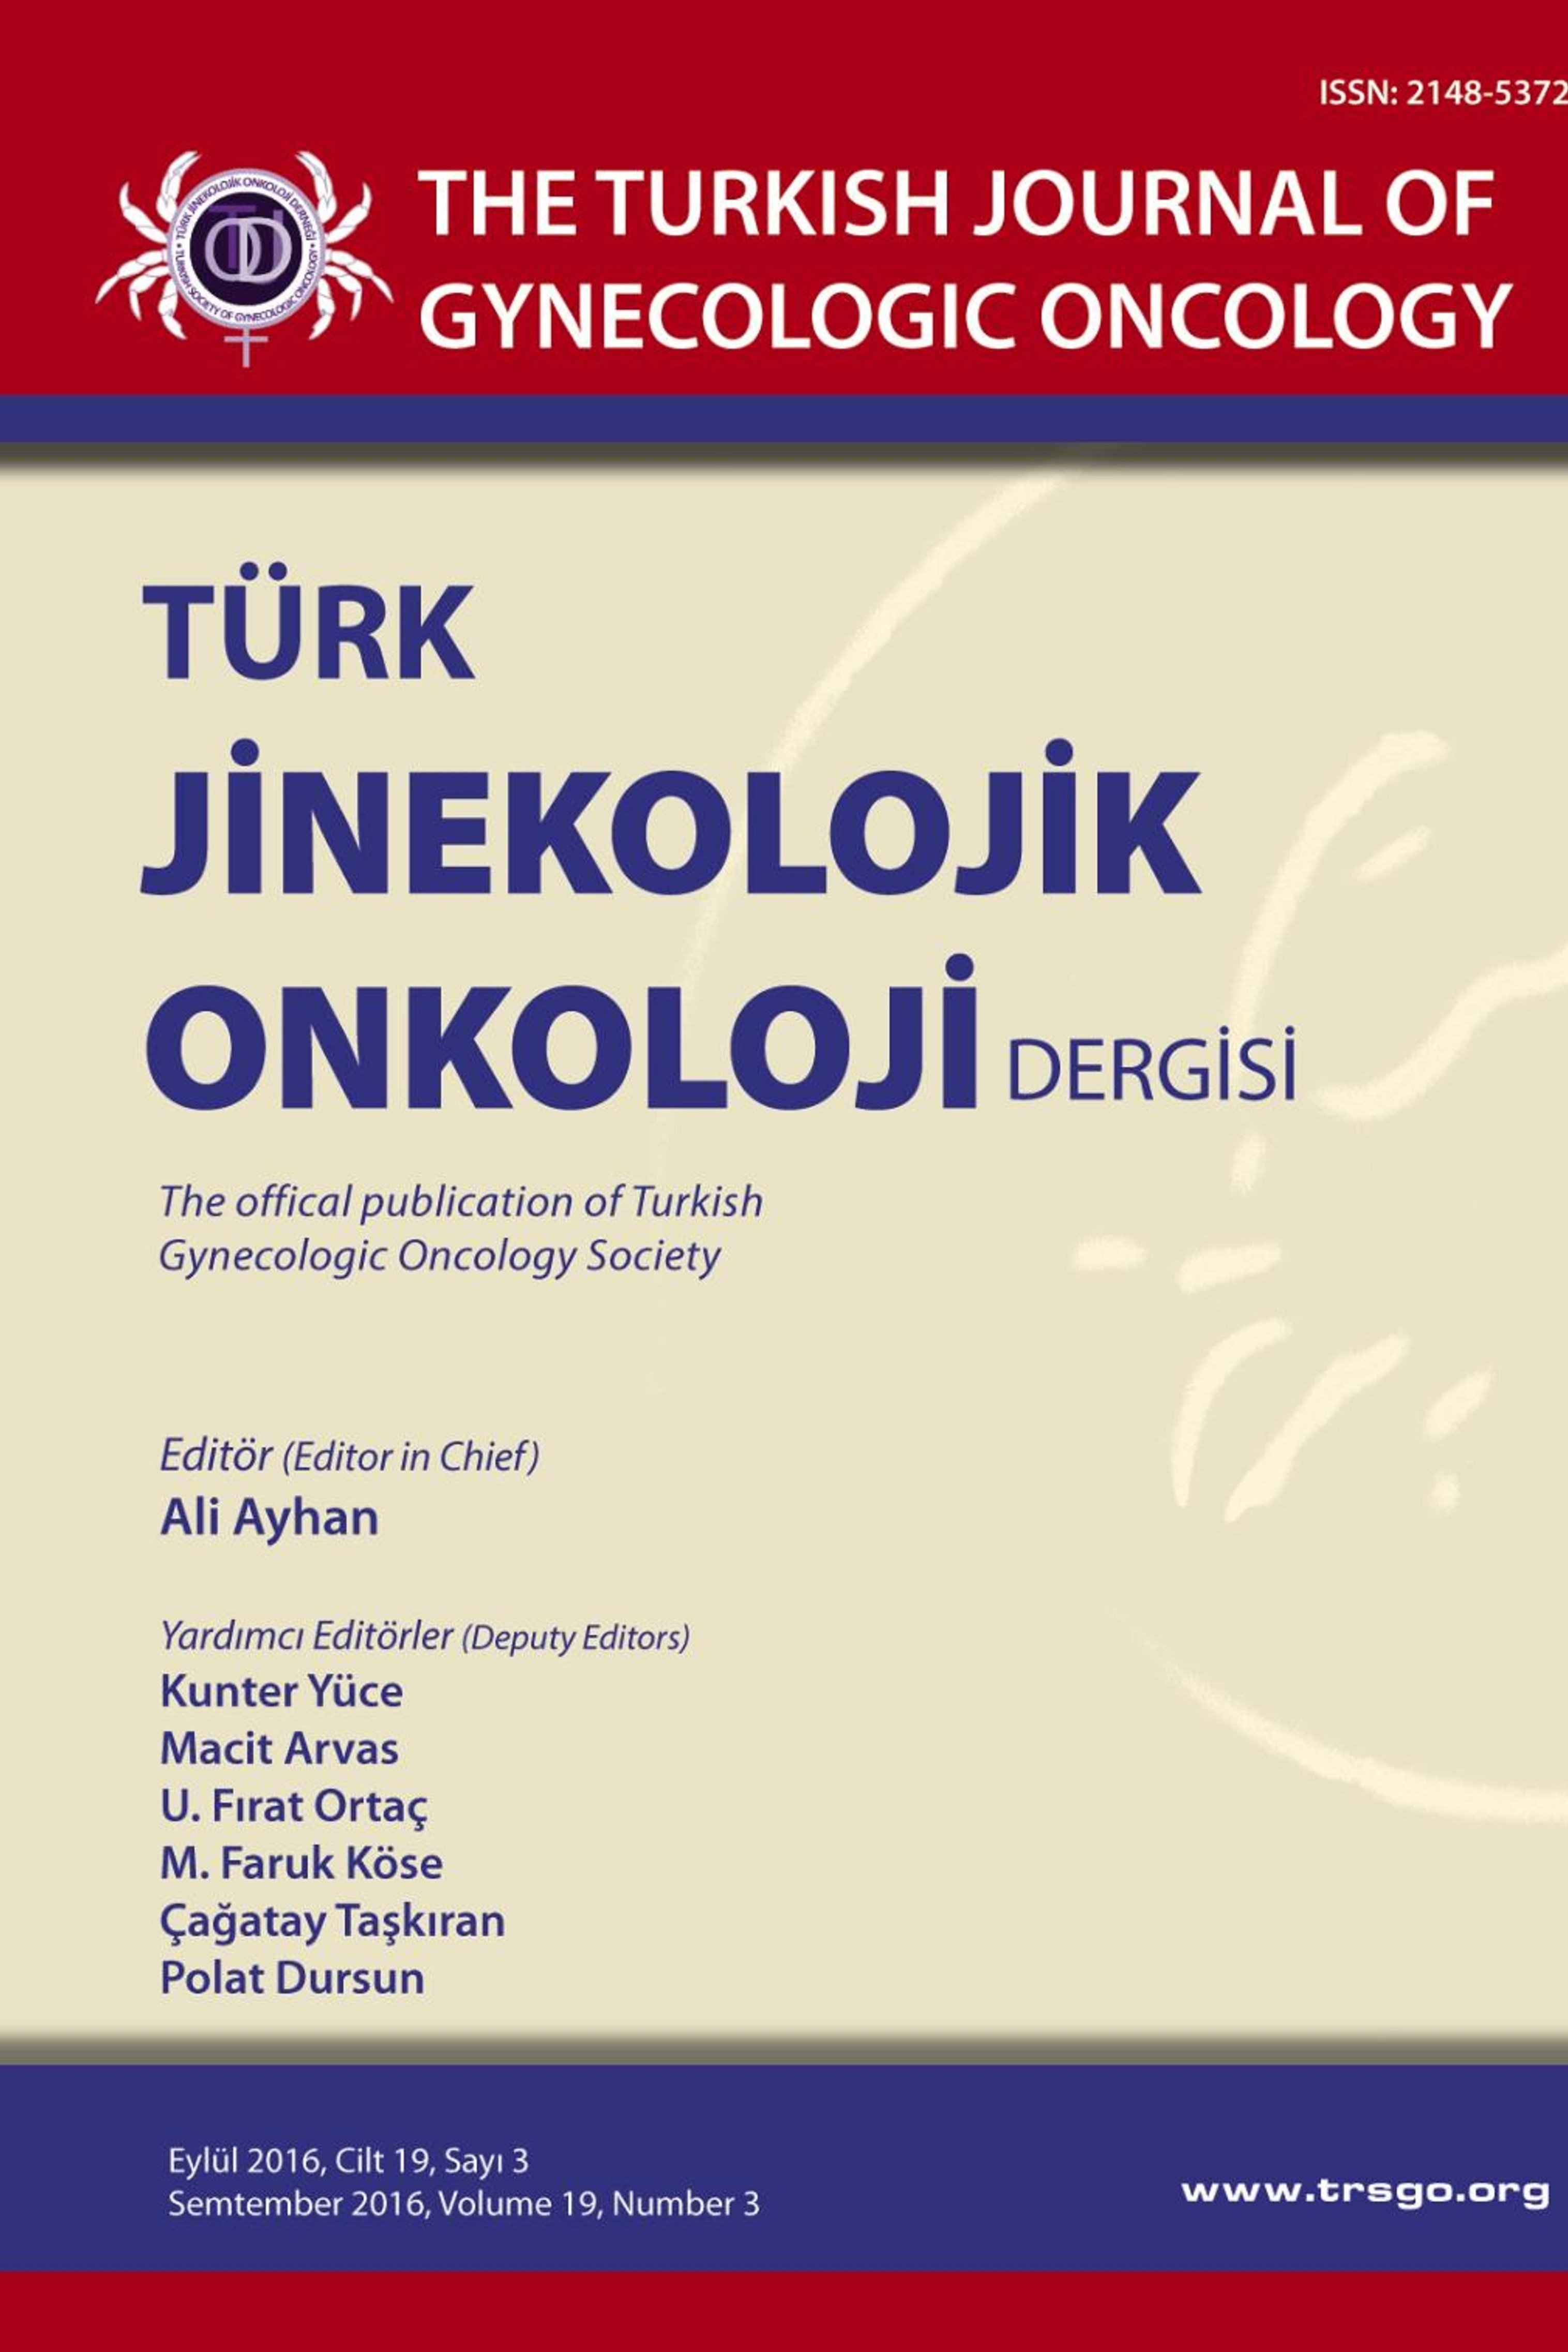 The Turkish Journal of Gynecologic Oncology